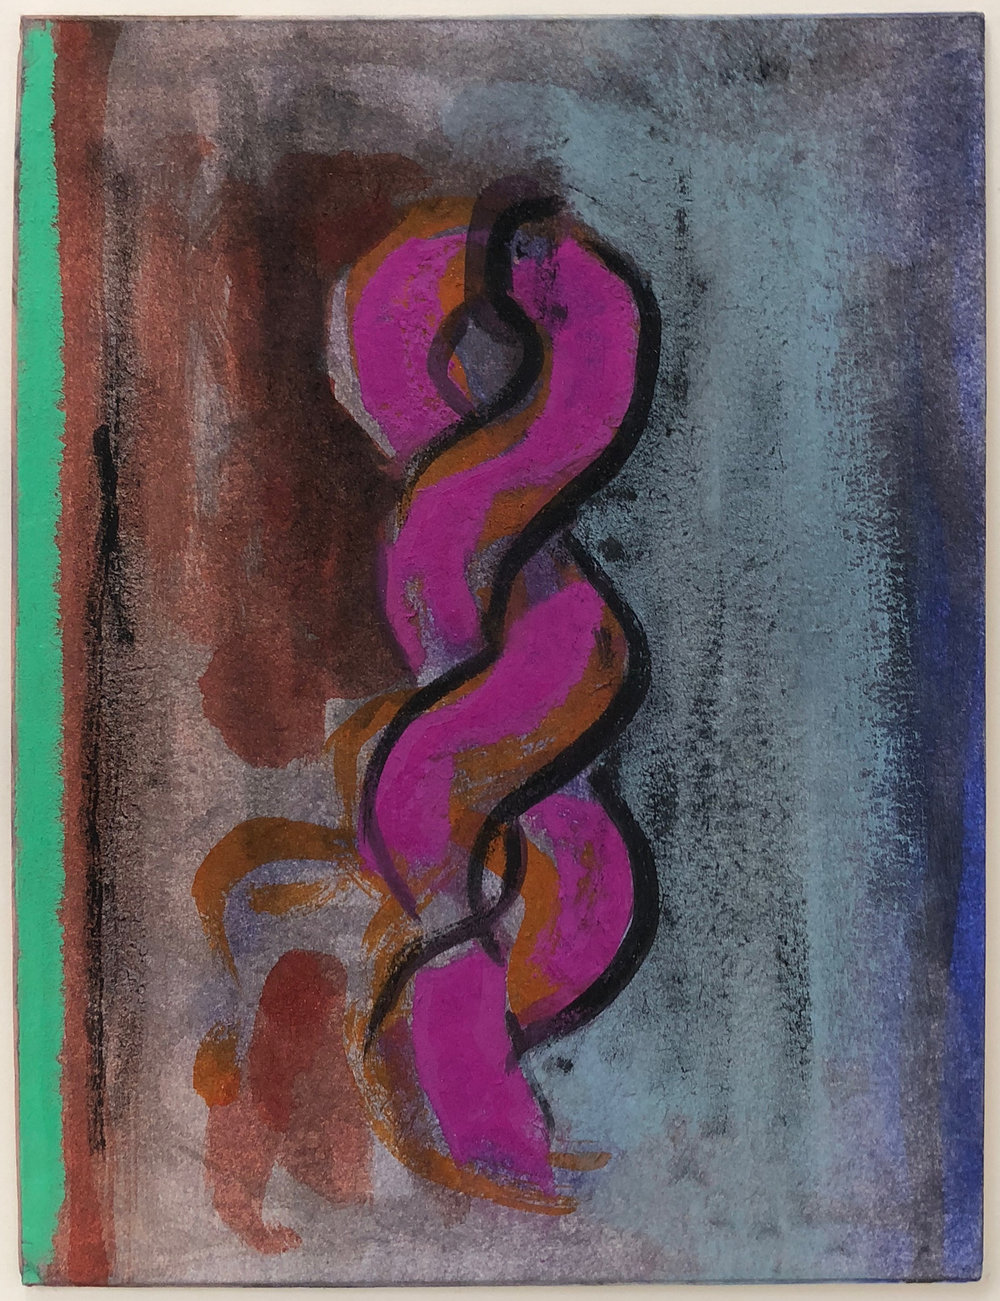 "Votive,   2012 Pastel and acrylic polymer on matboard, 8"" x 6""  Currently on view in    Hover: Works by Patrick Dunfey      at Lyceum Gallery, The Derryfield School, Manchester, NH through November 4, 2018"